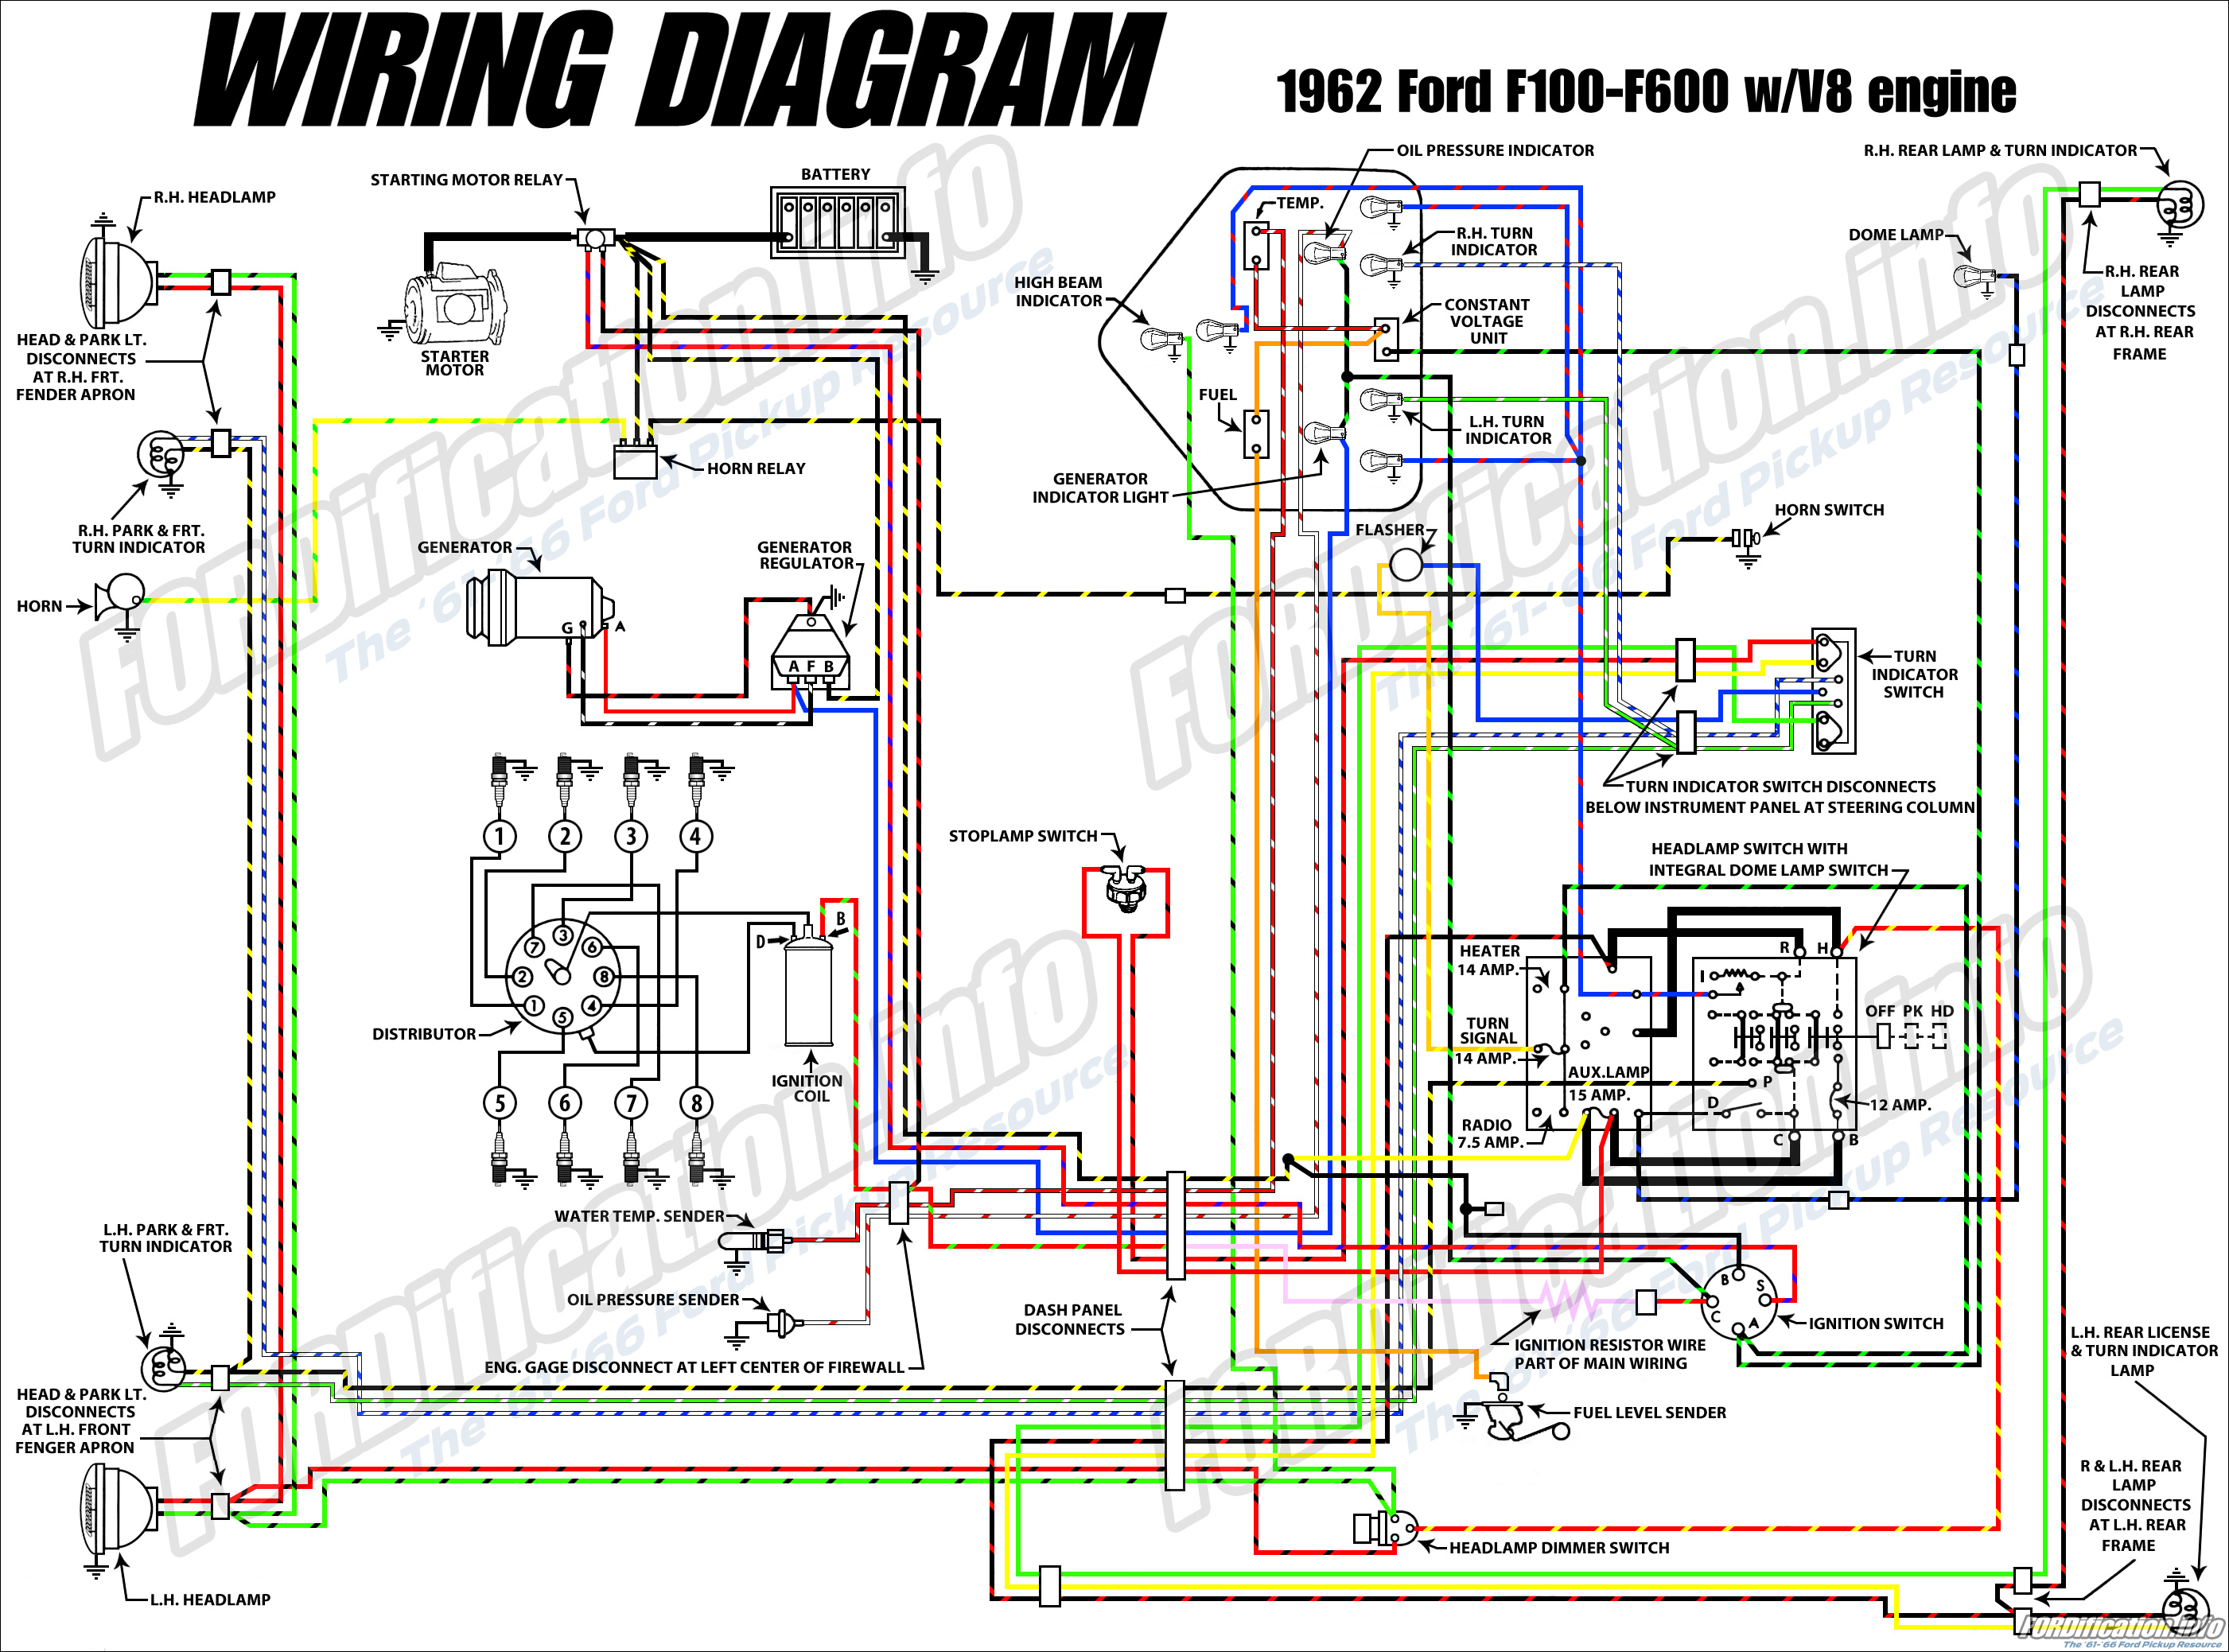 1962fordtruck_masterwiring 1962 ford truck wiring diagrams fordification info the '61 '66 ford truck wiring schematics at alyssarenee.co